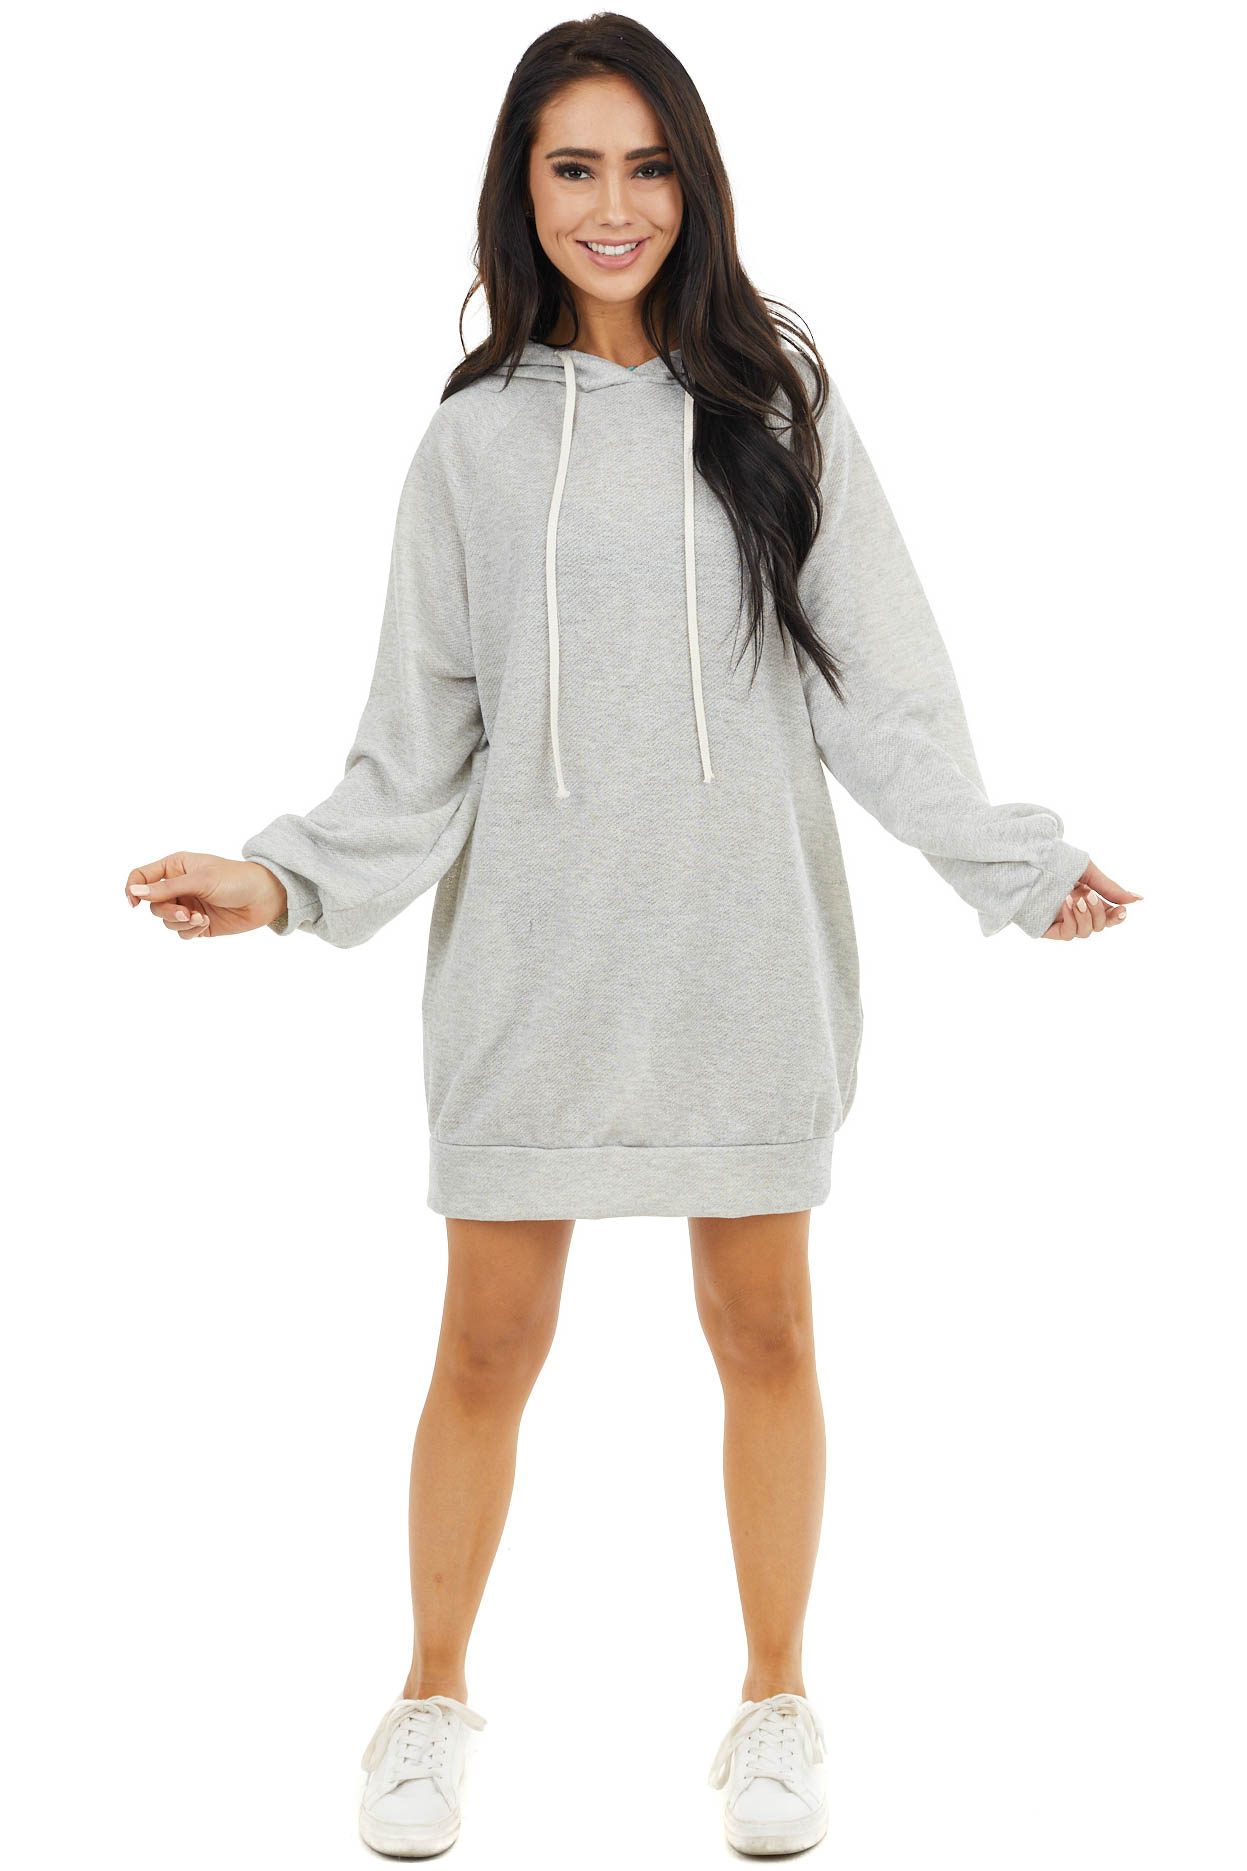 Heather Grey Hooded Dress with Long Bubble Sleeves